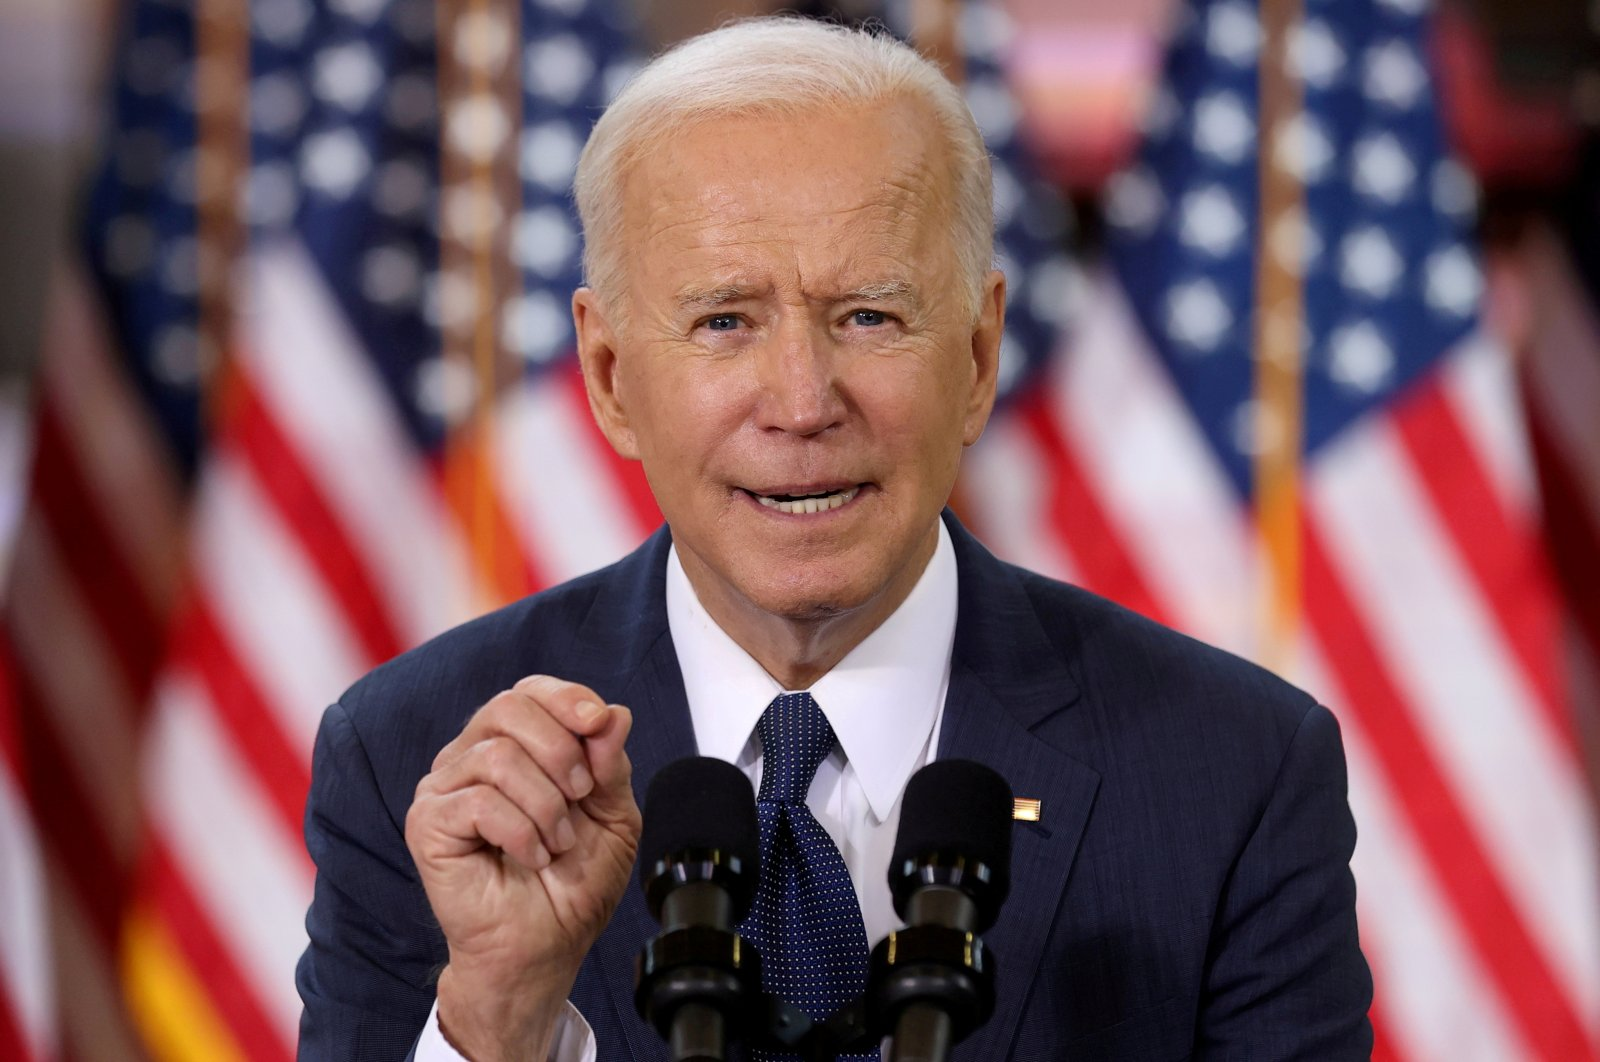 U.S. President Joe Biden speaks about his $2 trillion infrastructure plan during an event to tout the plan at Carpenters Pittsburgh Training Center in Pittsburgh, Pennsylvania, U.S., March 31, 2021. (Reuters Photo)